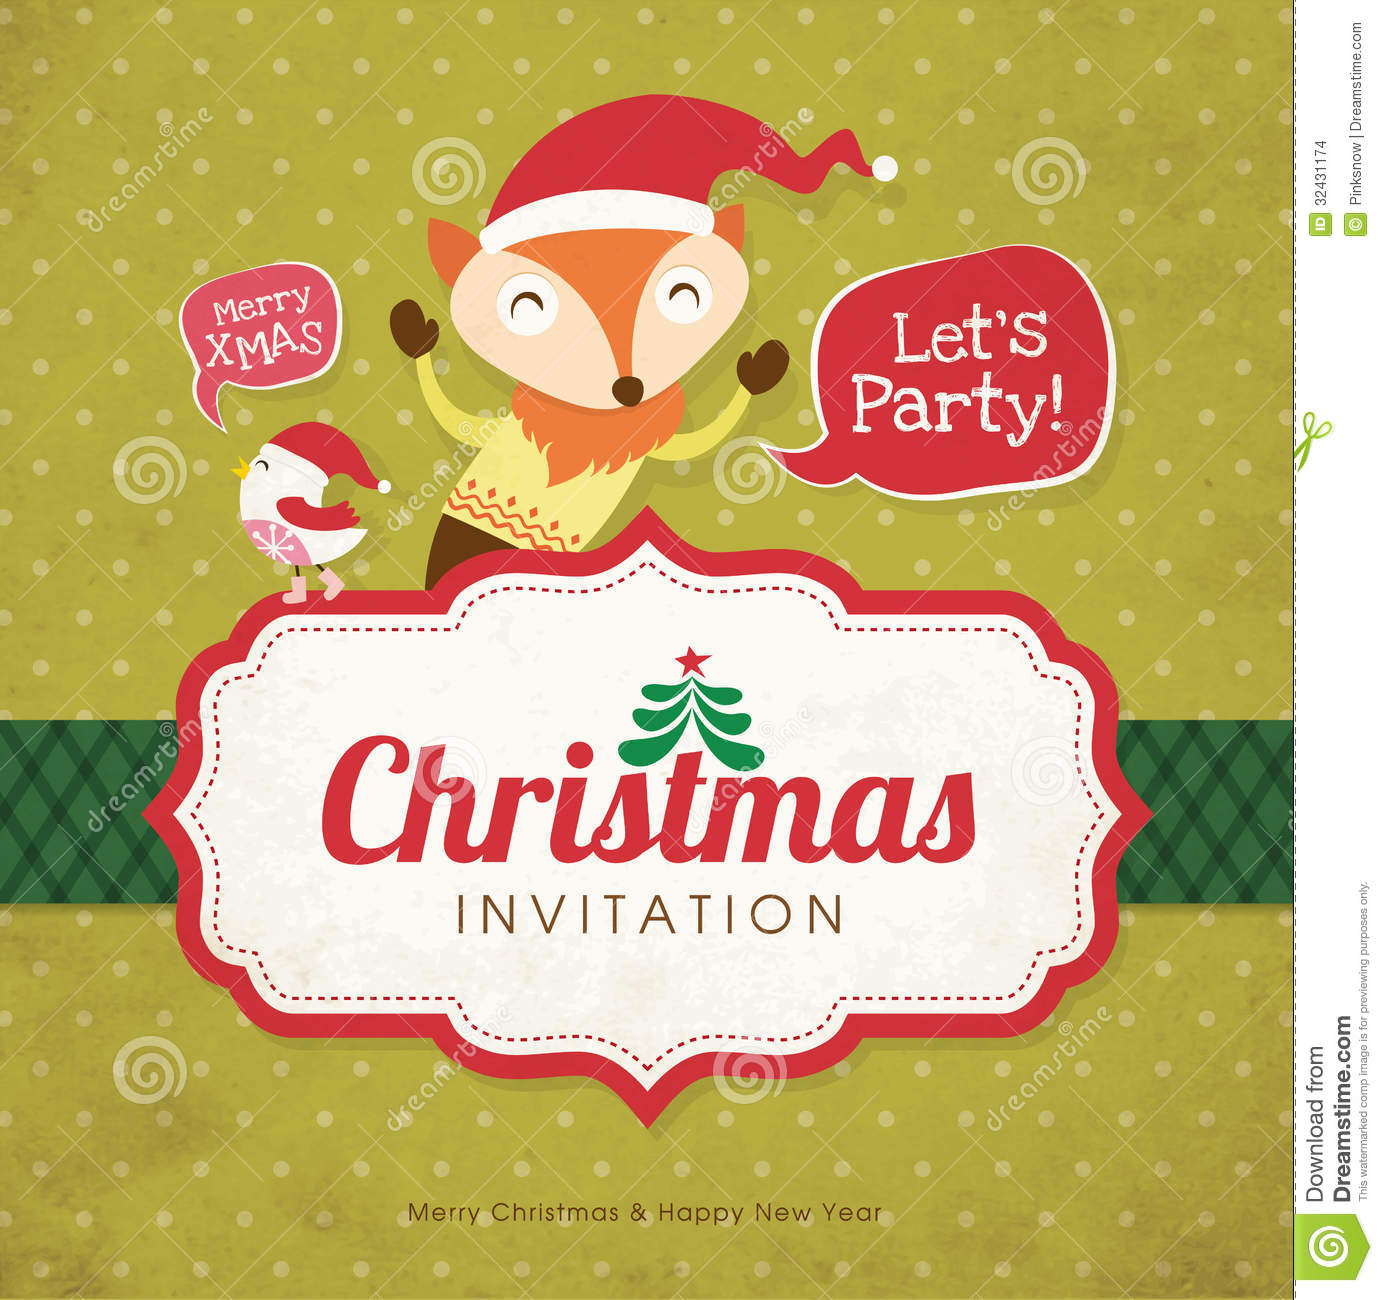 Wording For Christmas Party Invitations is nice invitations ideas